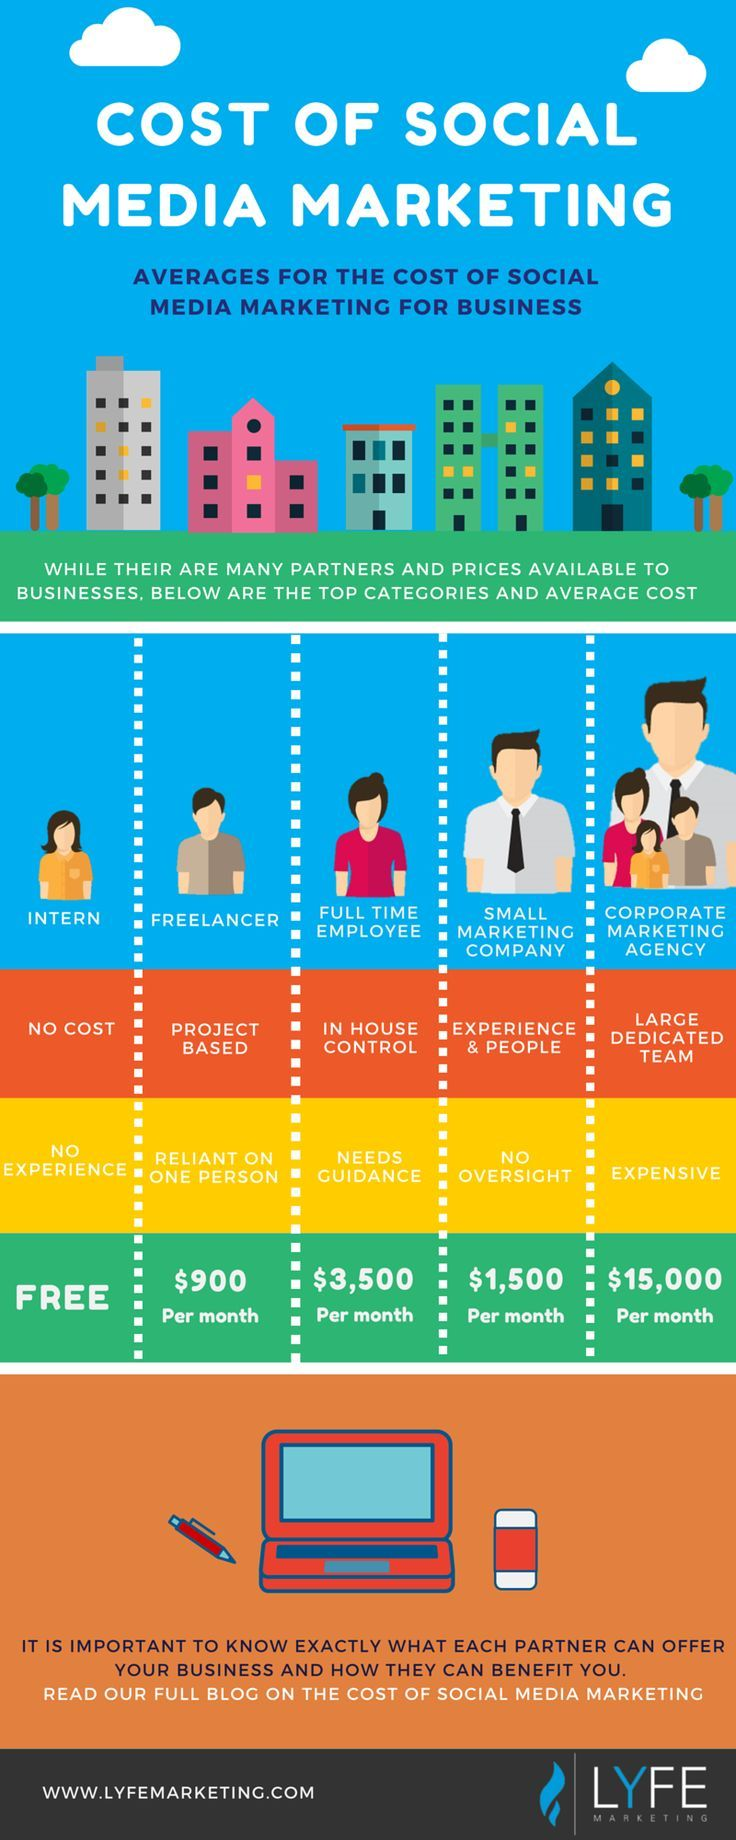 """[Infographic] """"How much does social media marketing cost?"""" In depth look at interns, freelancers, employees, small marketing companies and corporate agencies pricing for social media marketing."""